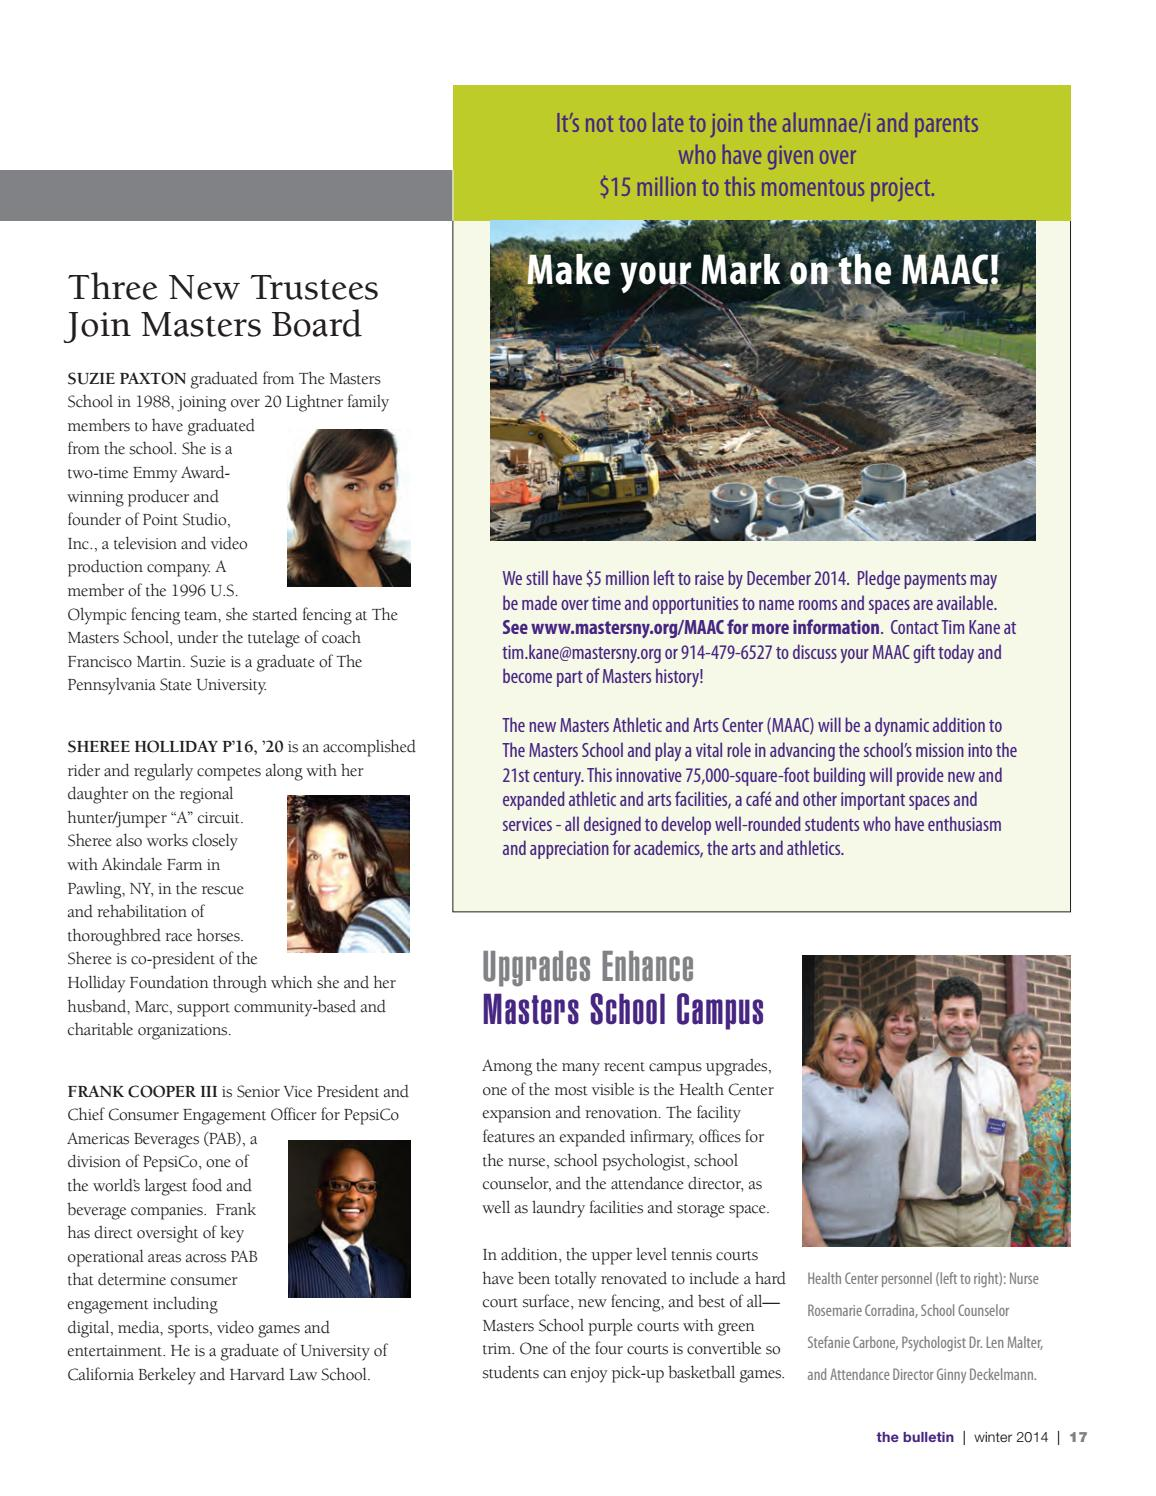 Masters Bulletin Winter14 By The Masters School Issuu